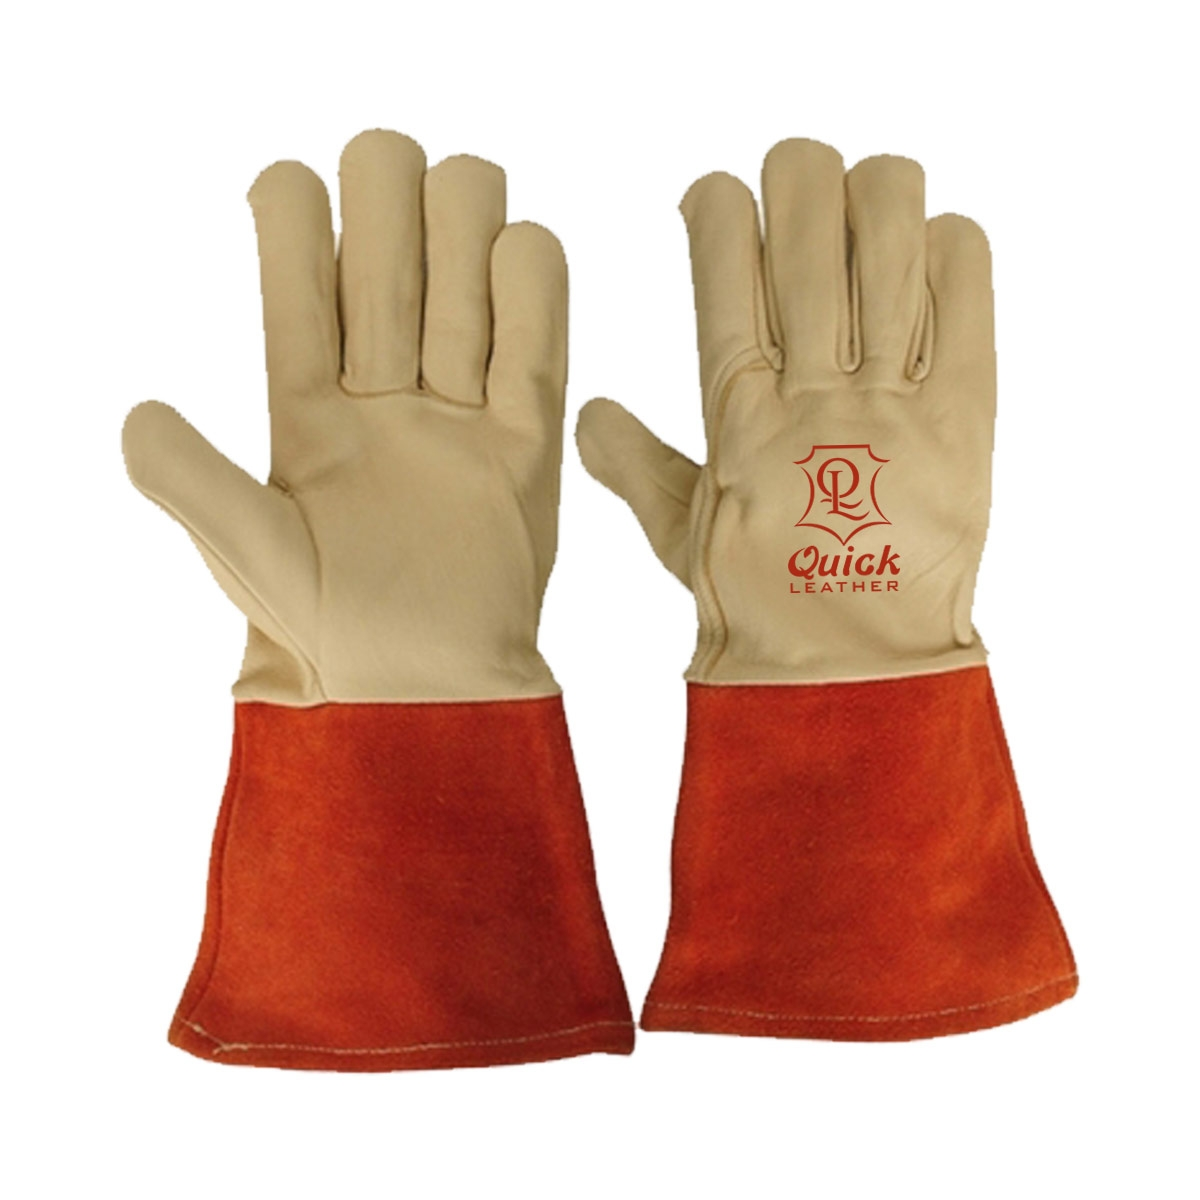 Welding gloves are excellent for use when welding in dry and oily conditions  QL 210